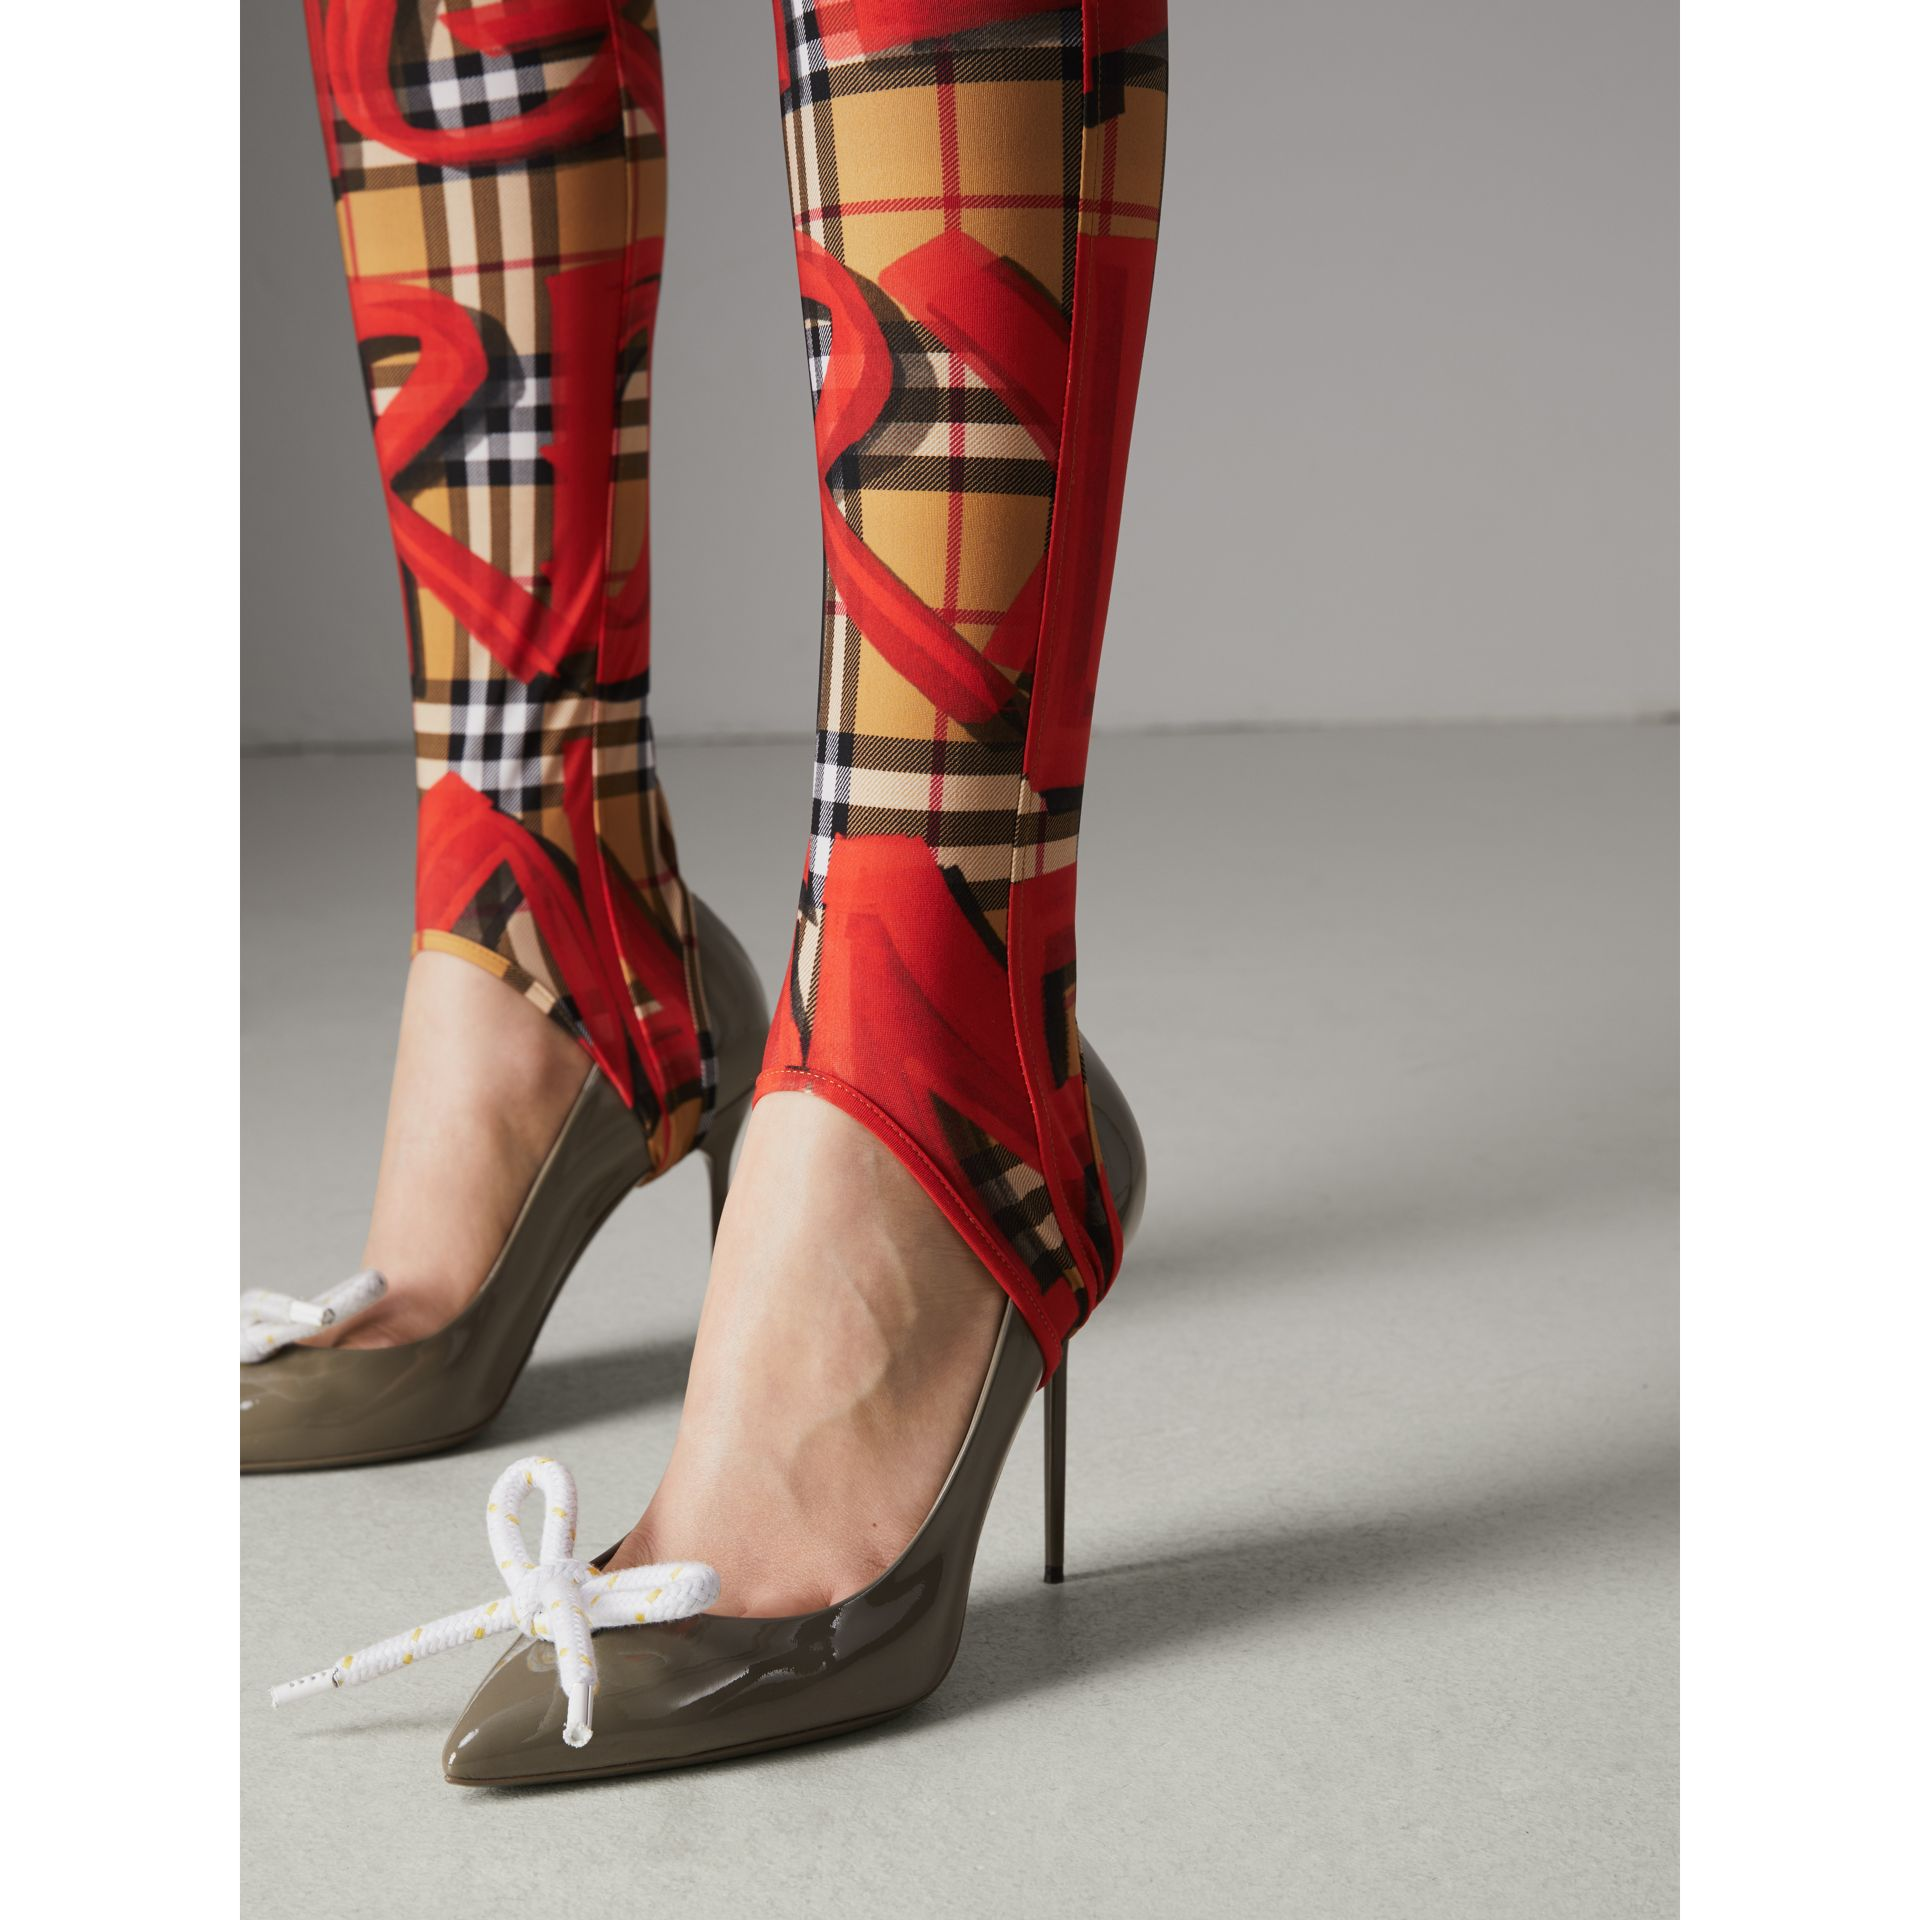 Legging à imprimé graffiti (Rouge Vif) - Femme | Burberry Canada - photo de la galerie 1